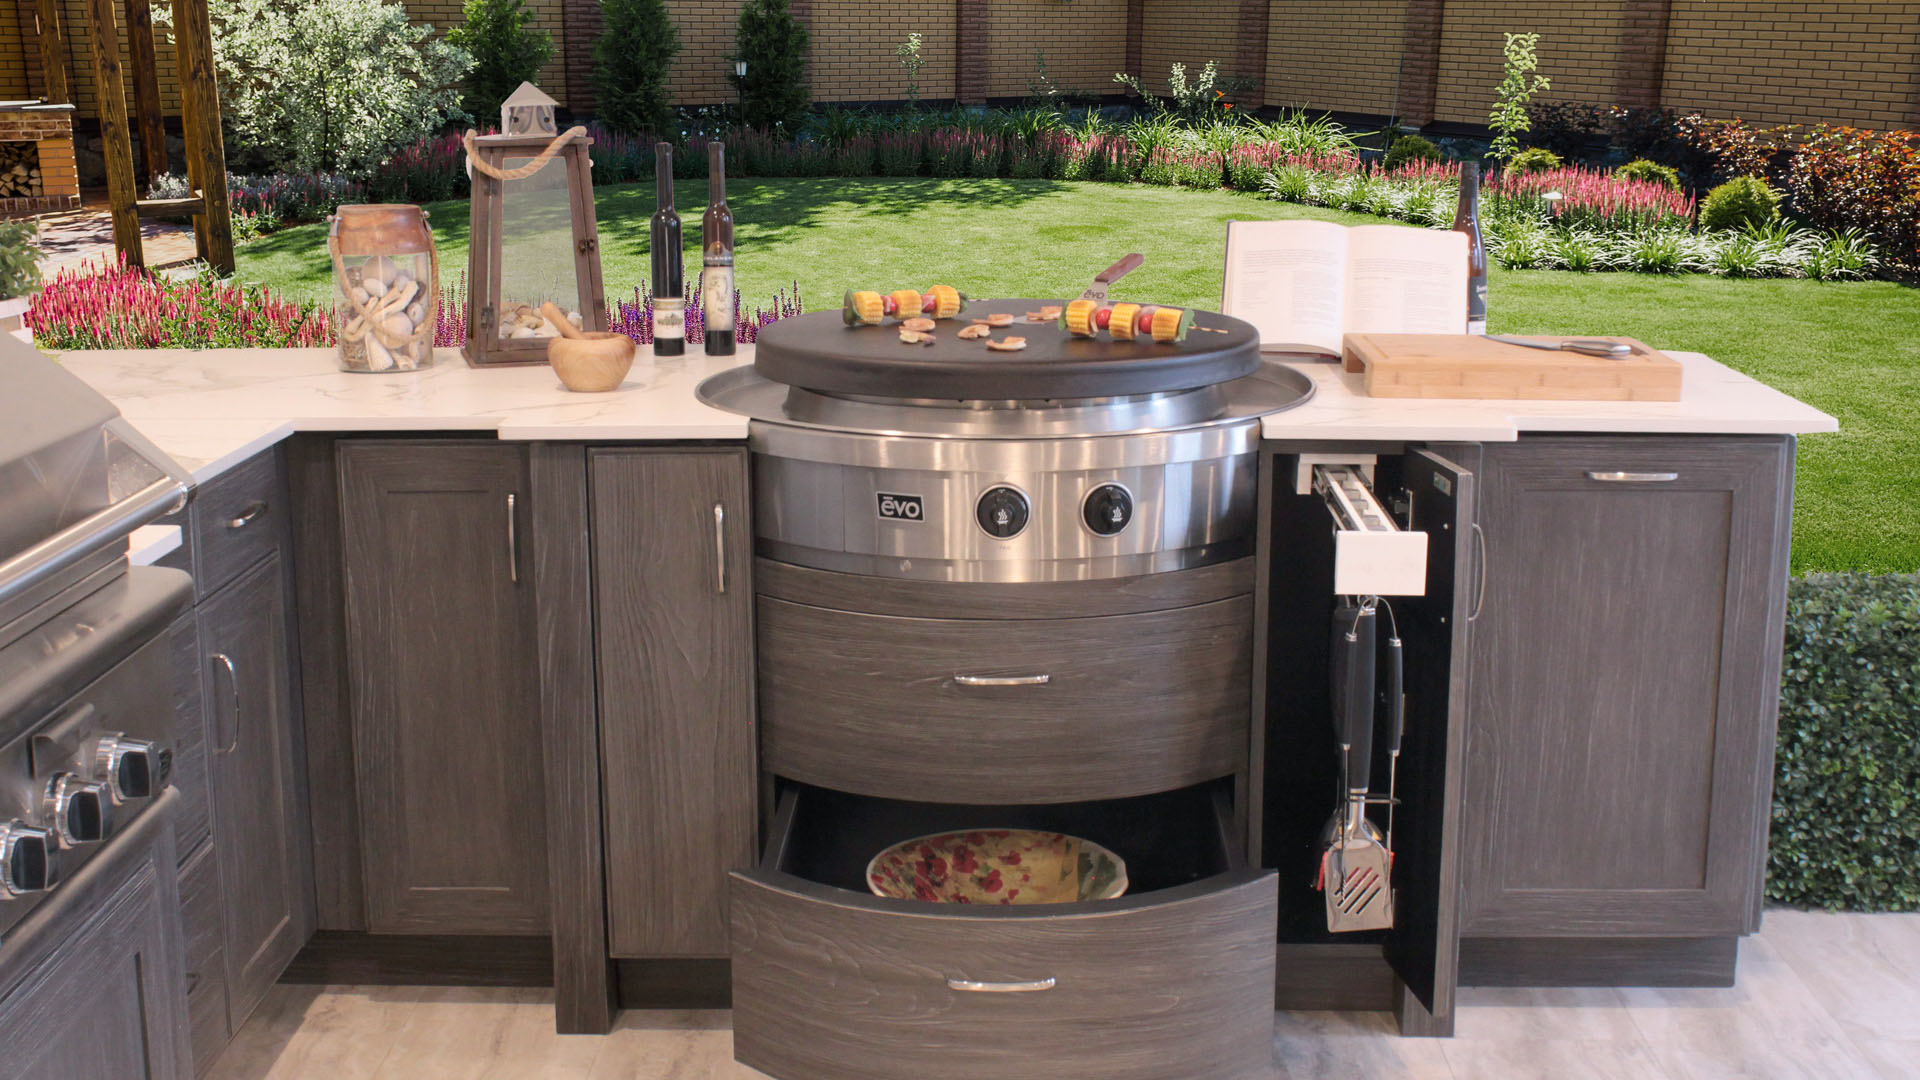 Evo Built In Cooktop Grill Griddle For Outdoor Kitchens Oasis Outdoor Living Cooking outdoors is a delight. oasis outdoor living